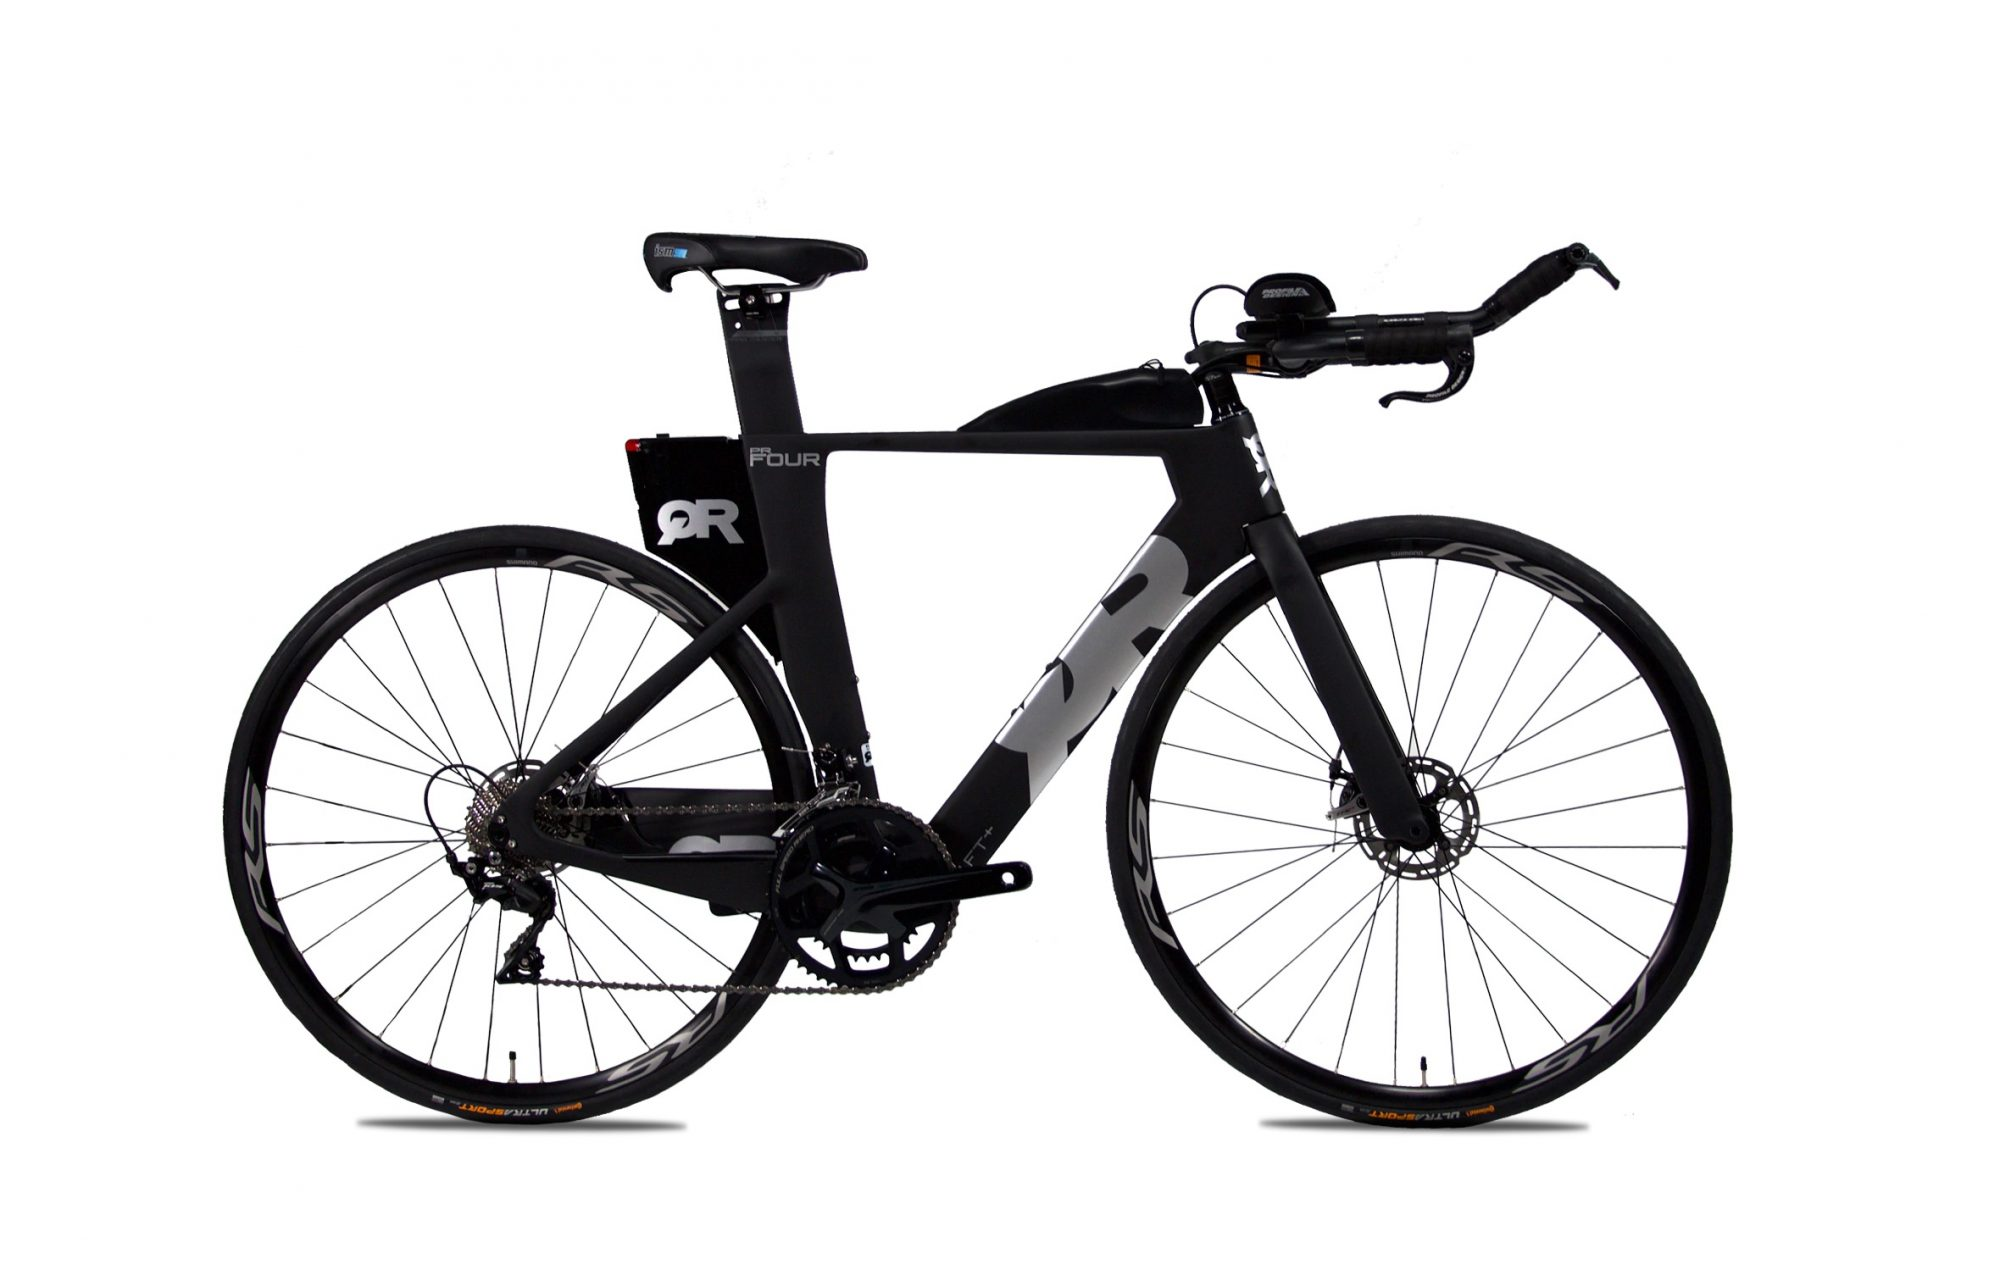 Quintana Roo PRfour Triathlon Bike Entry Level